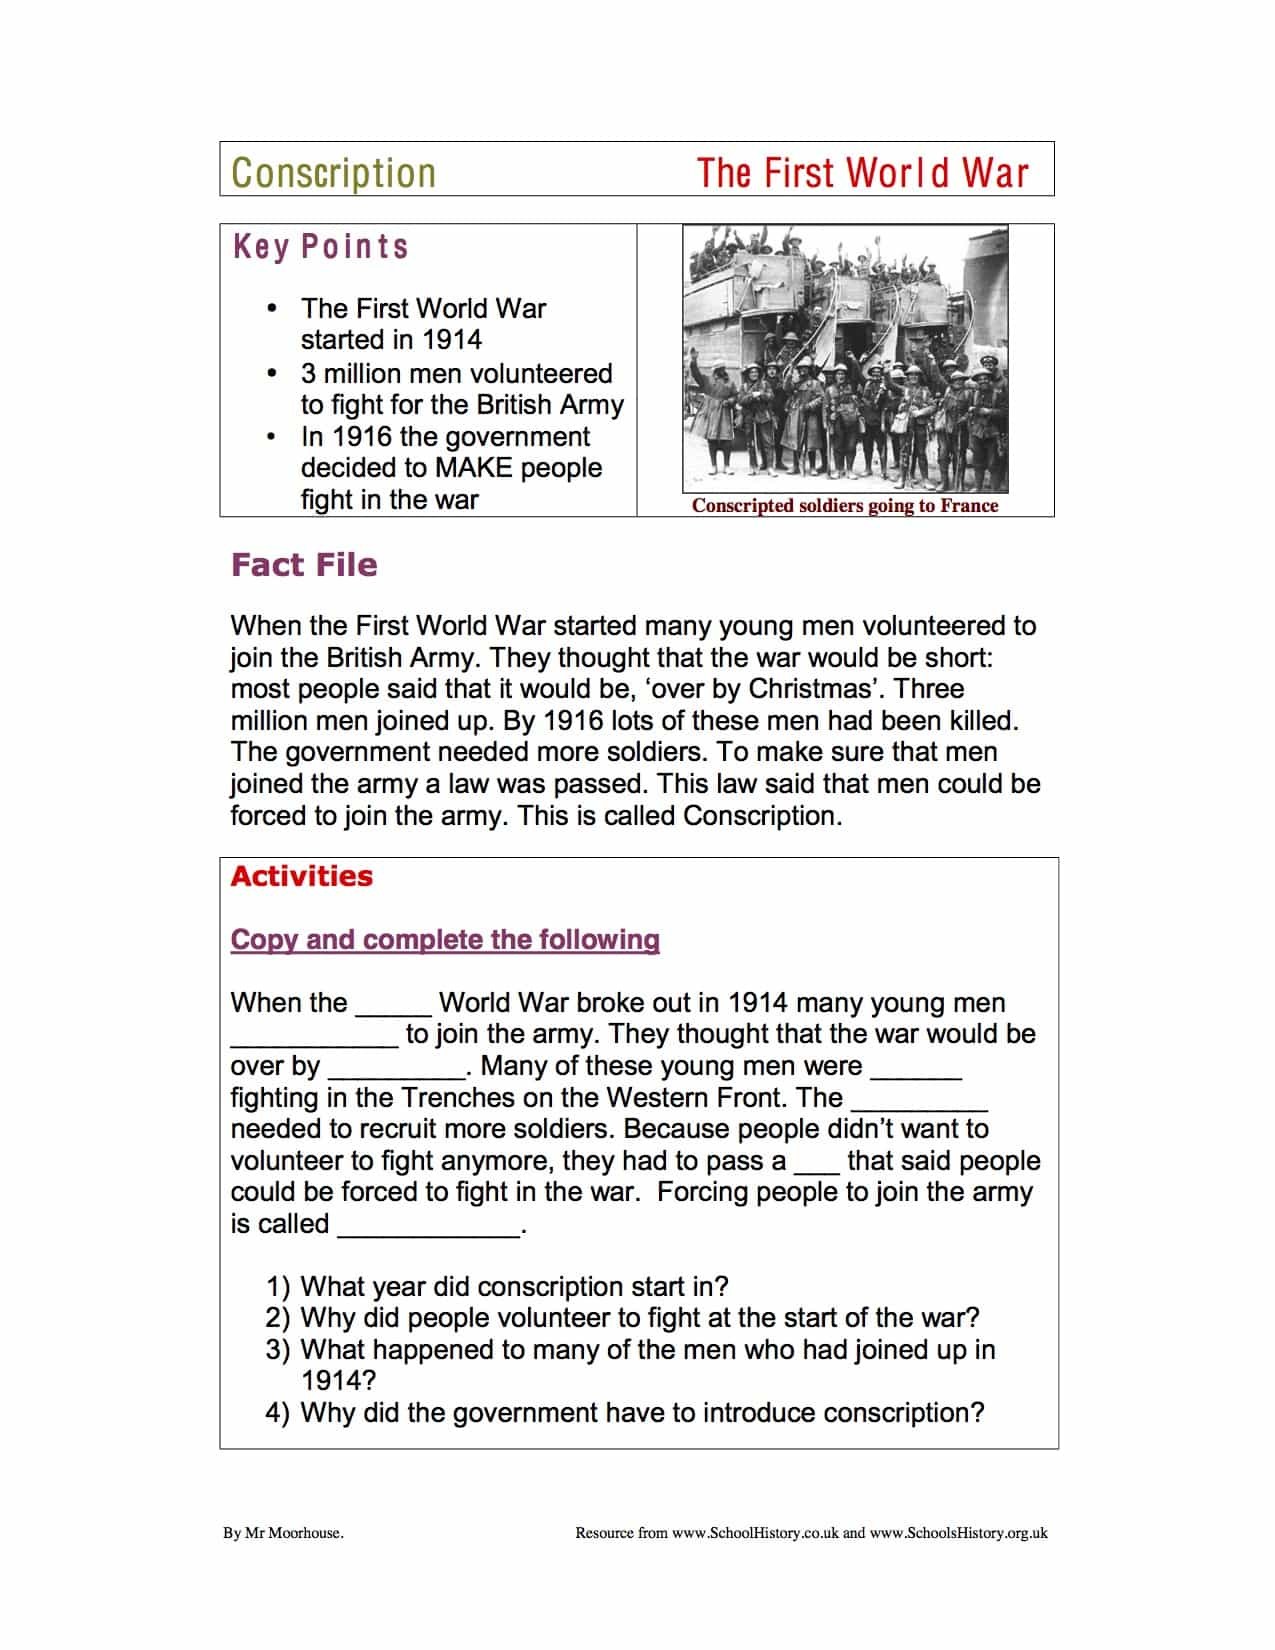 World War 1 Conscription Lower Facts